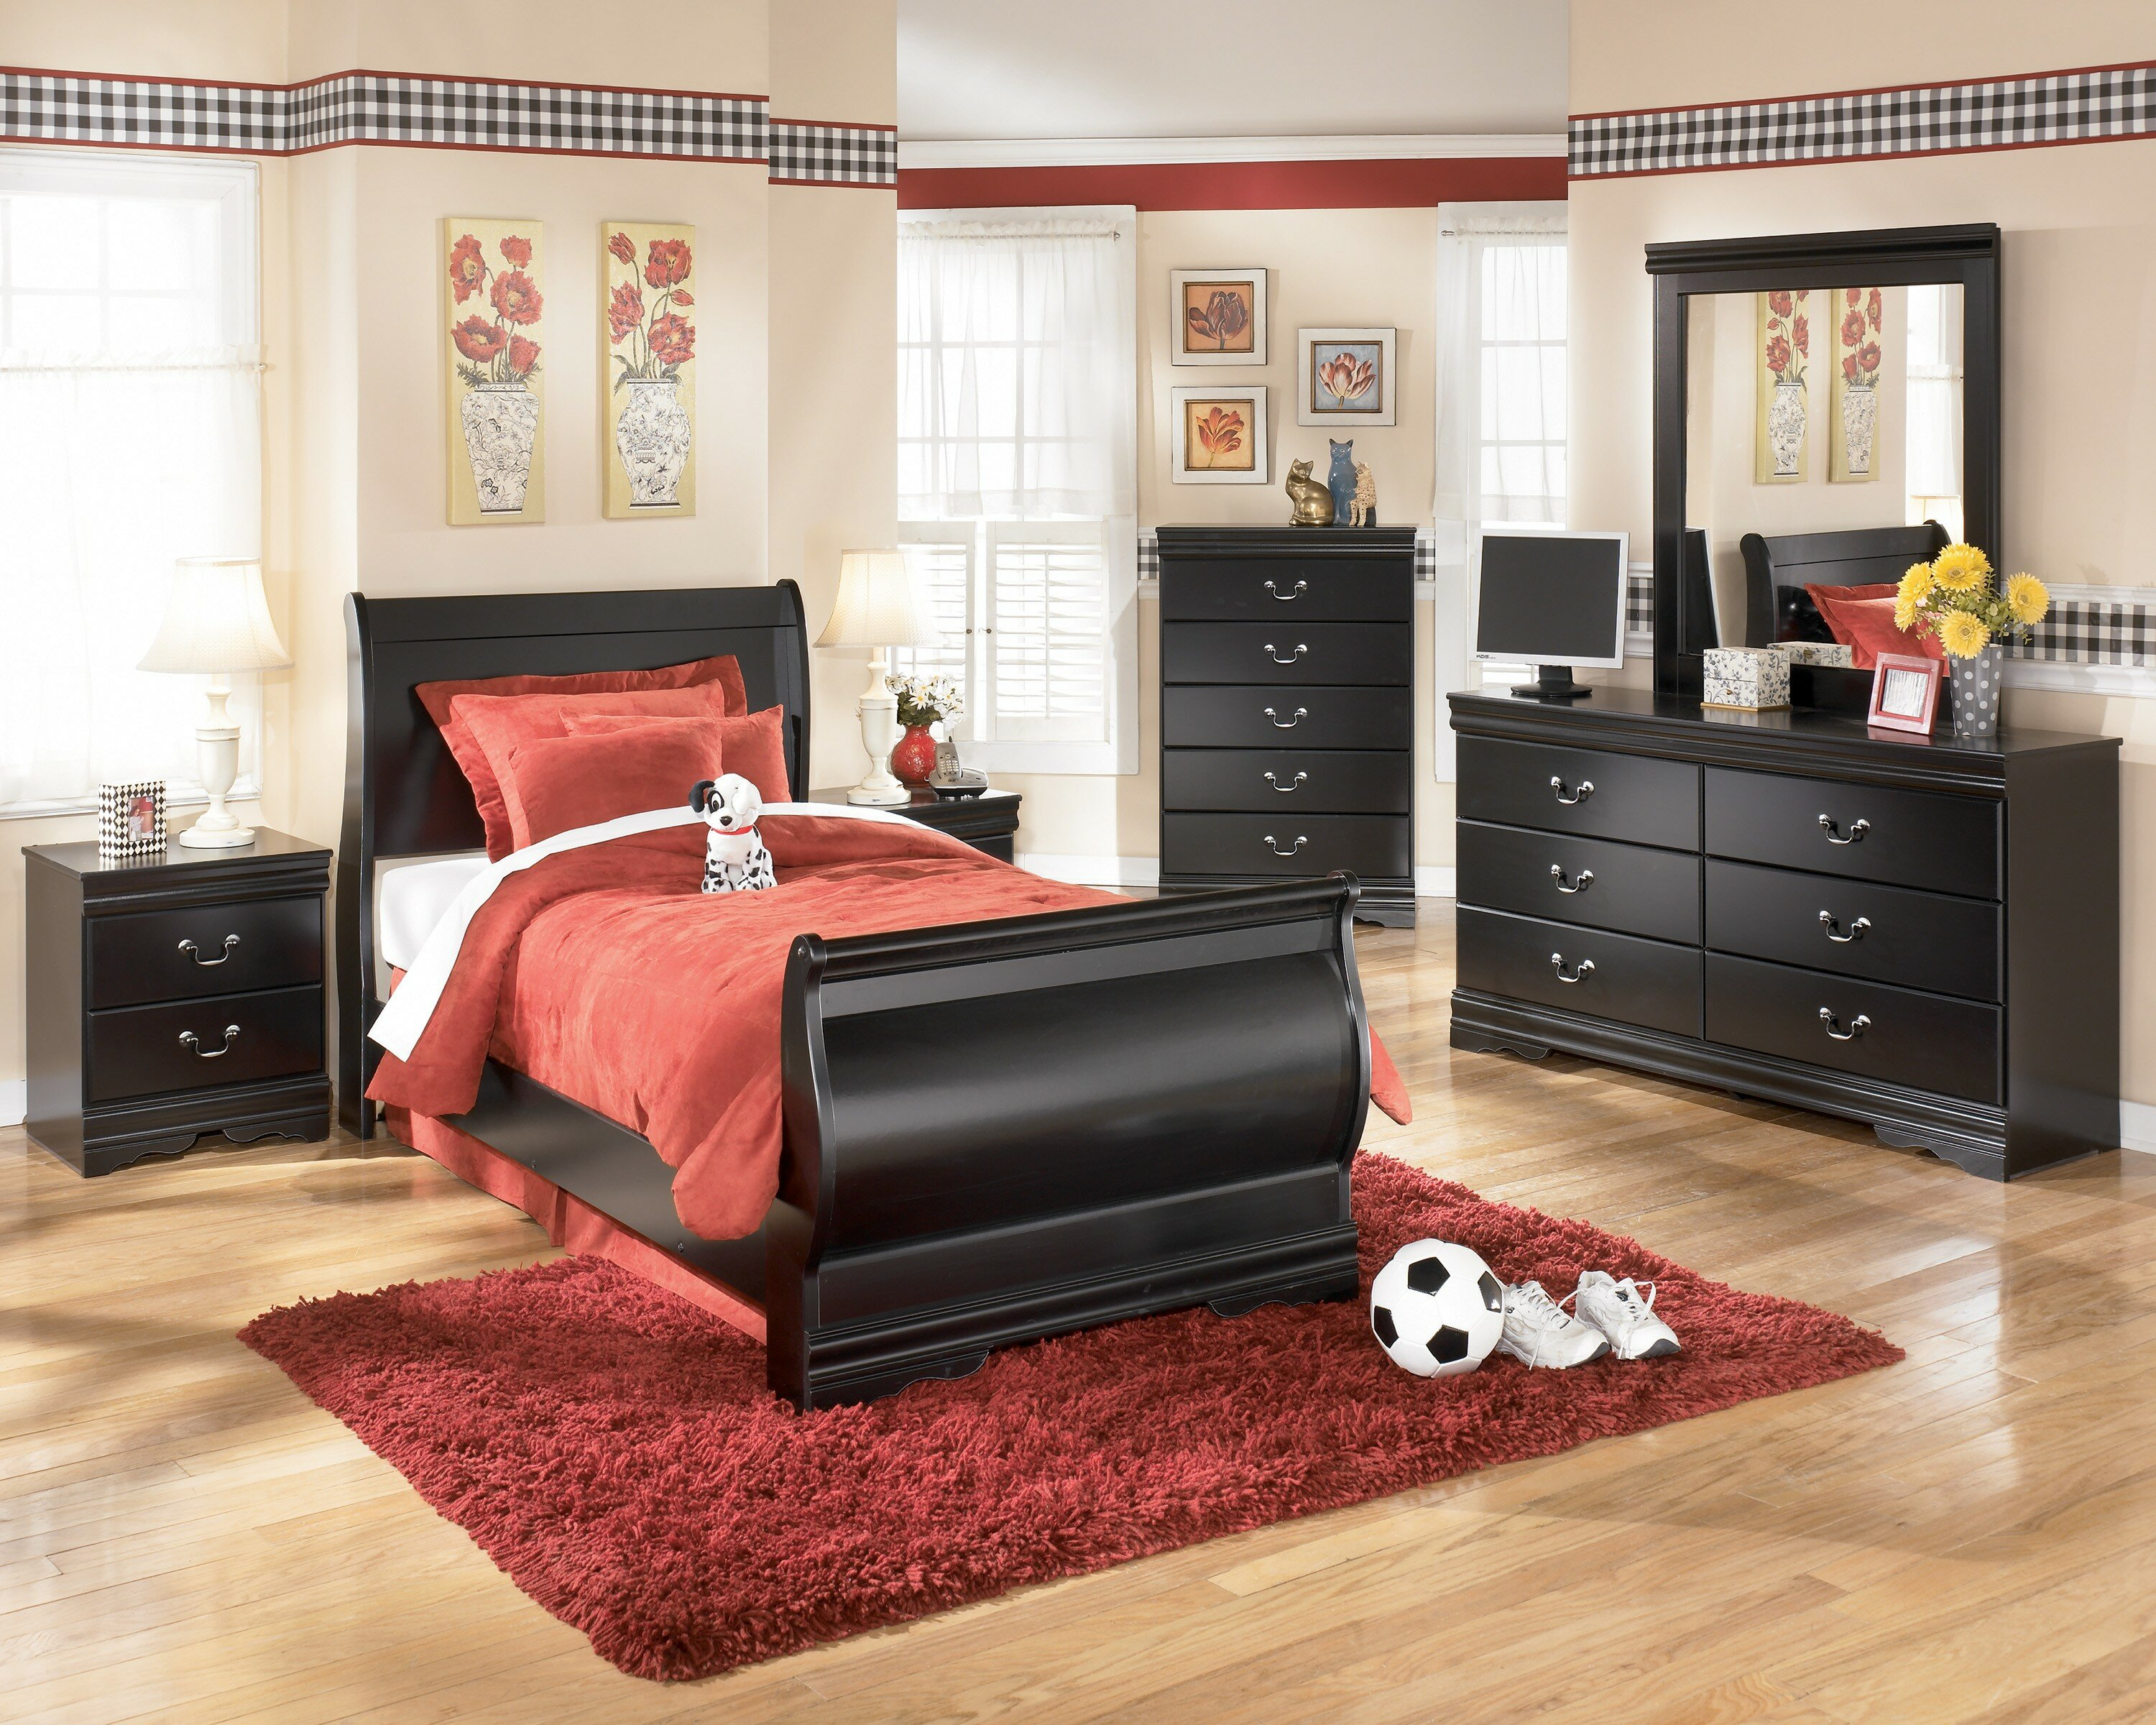 bedroom: craigslist bed set | craigslist bedroom sets | dining